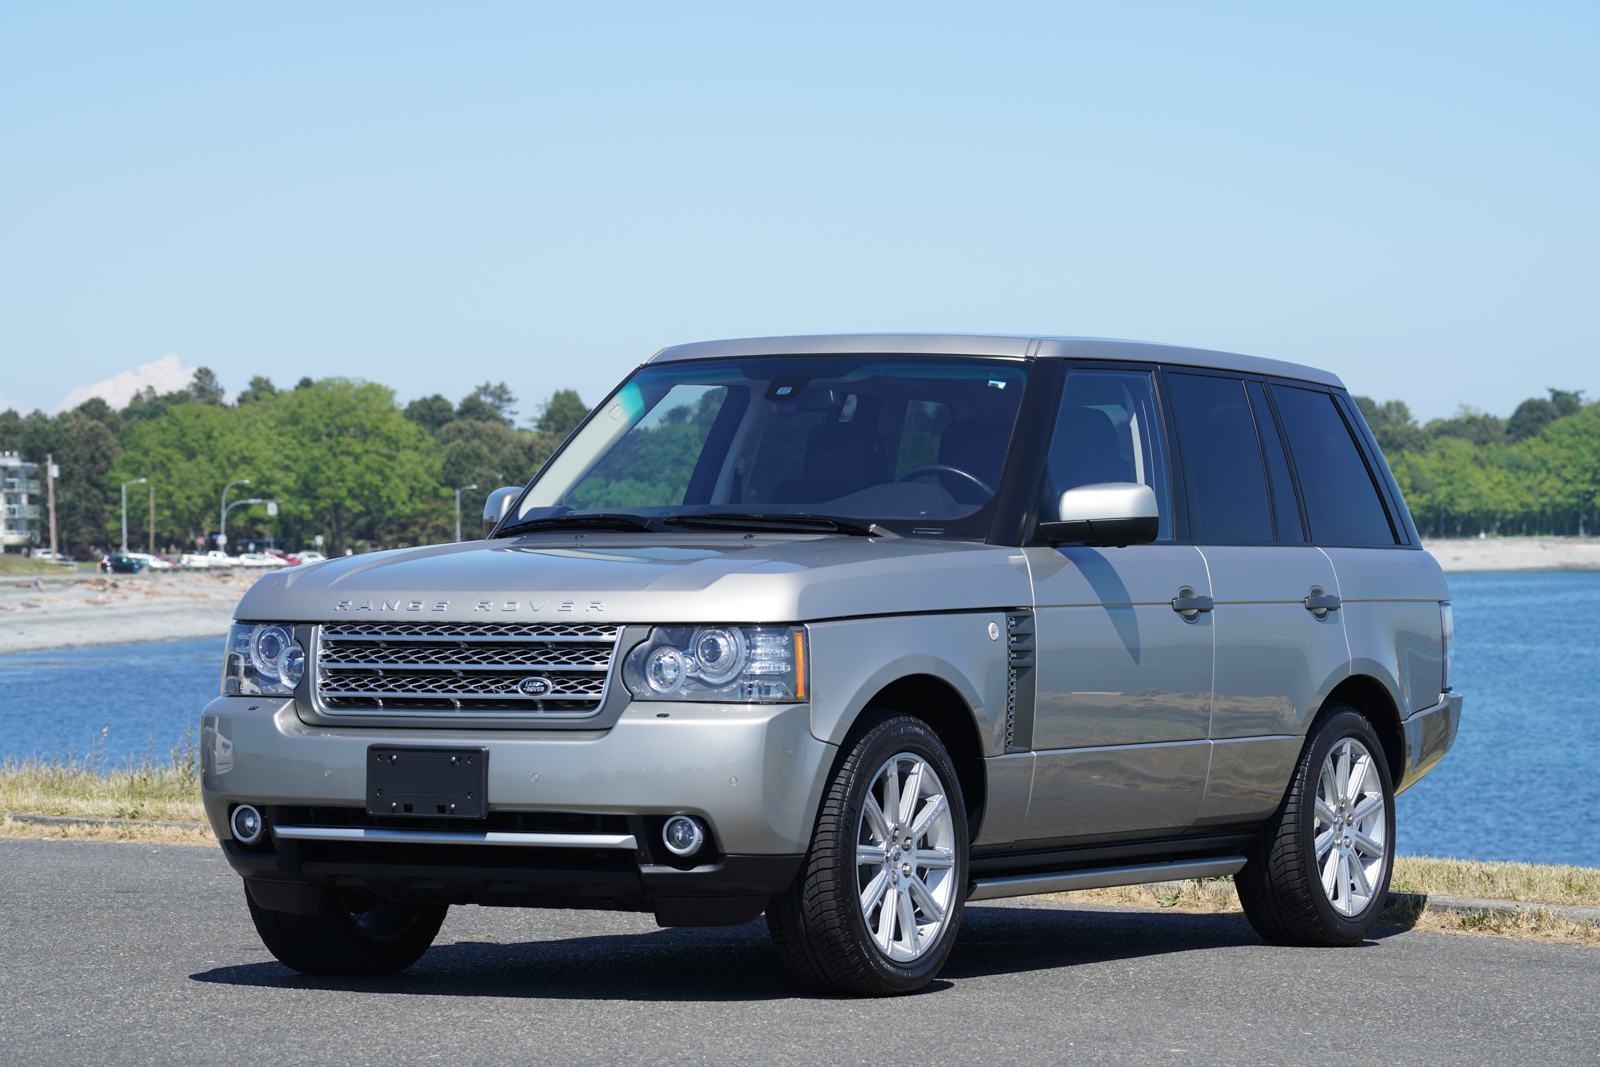 2011 Range Rover Supercharged for sale